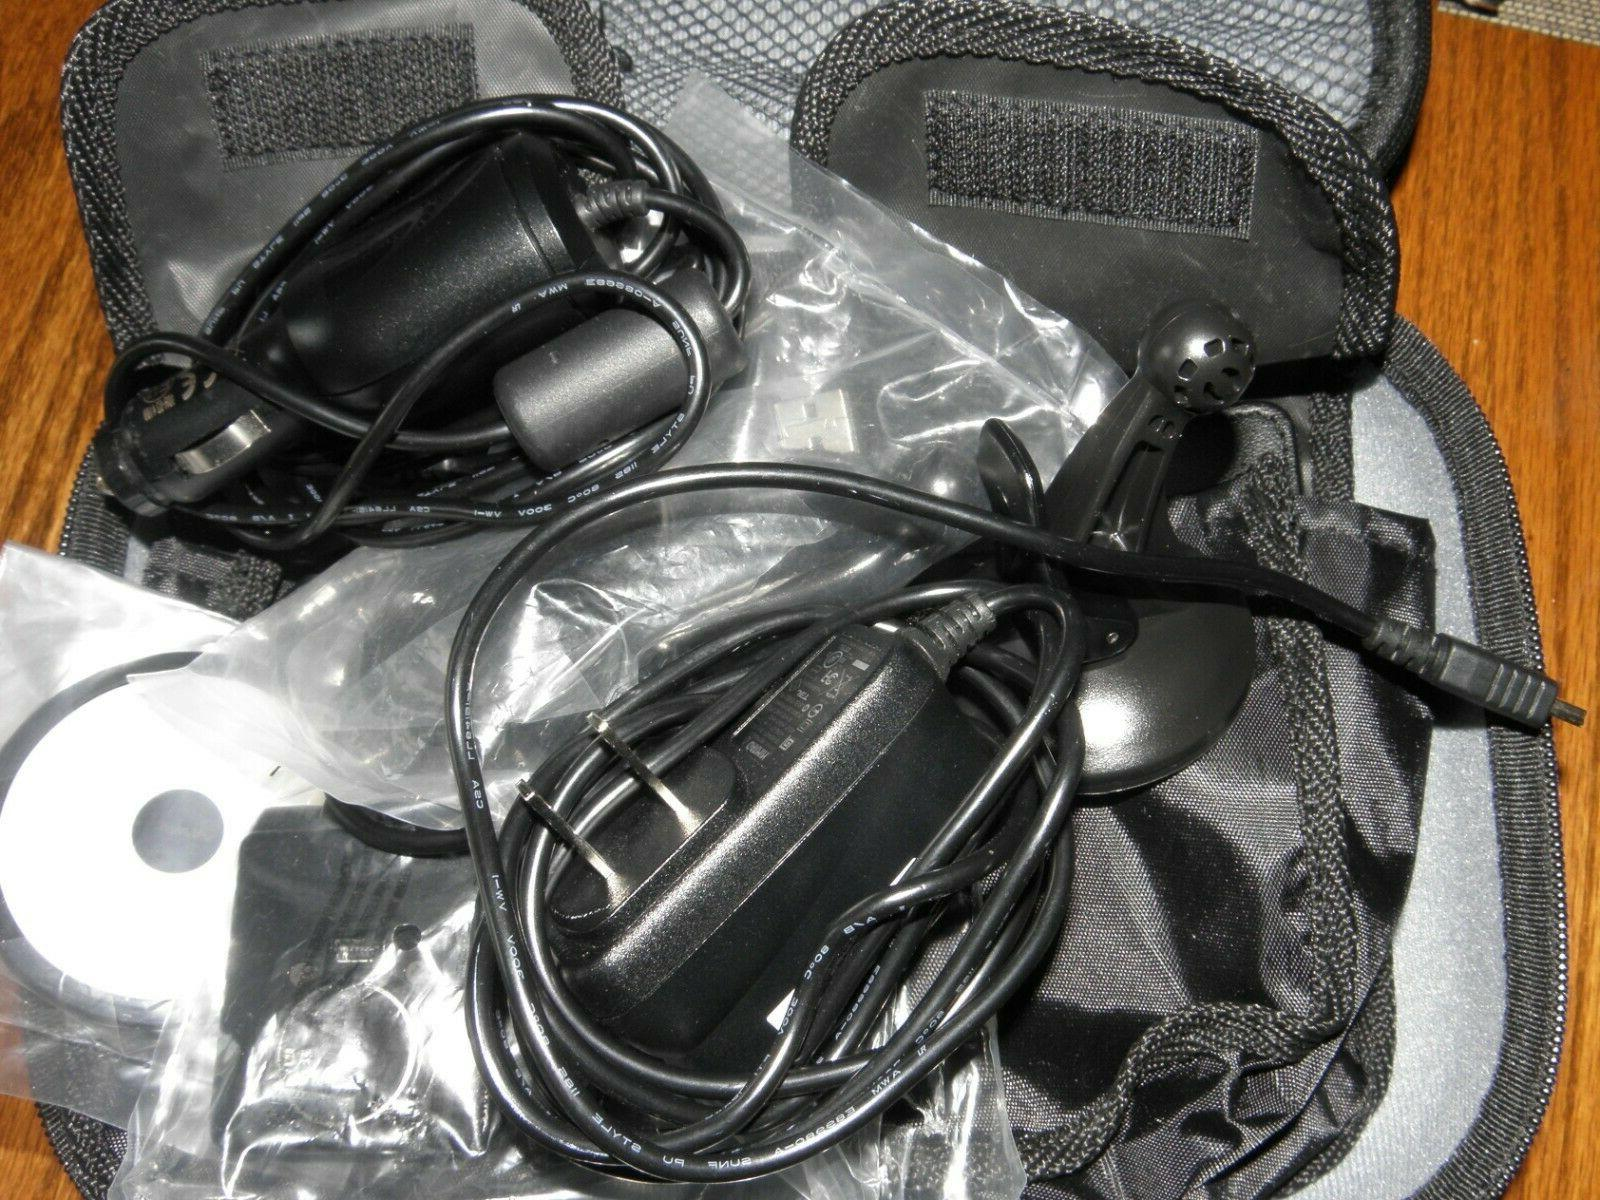 Brand New Garmin Drive 52 GPS with case accessories